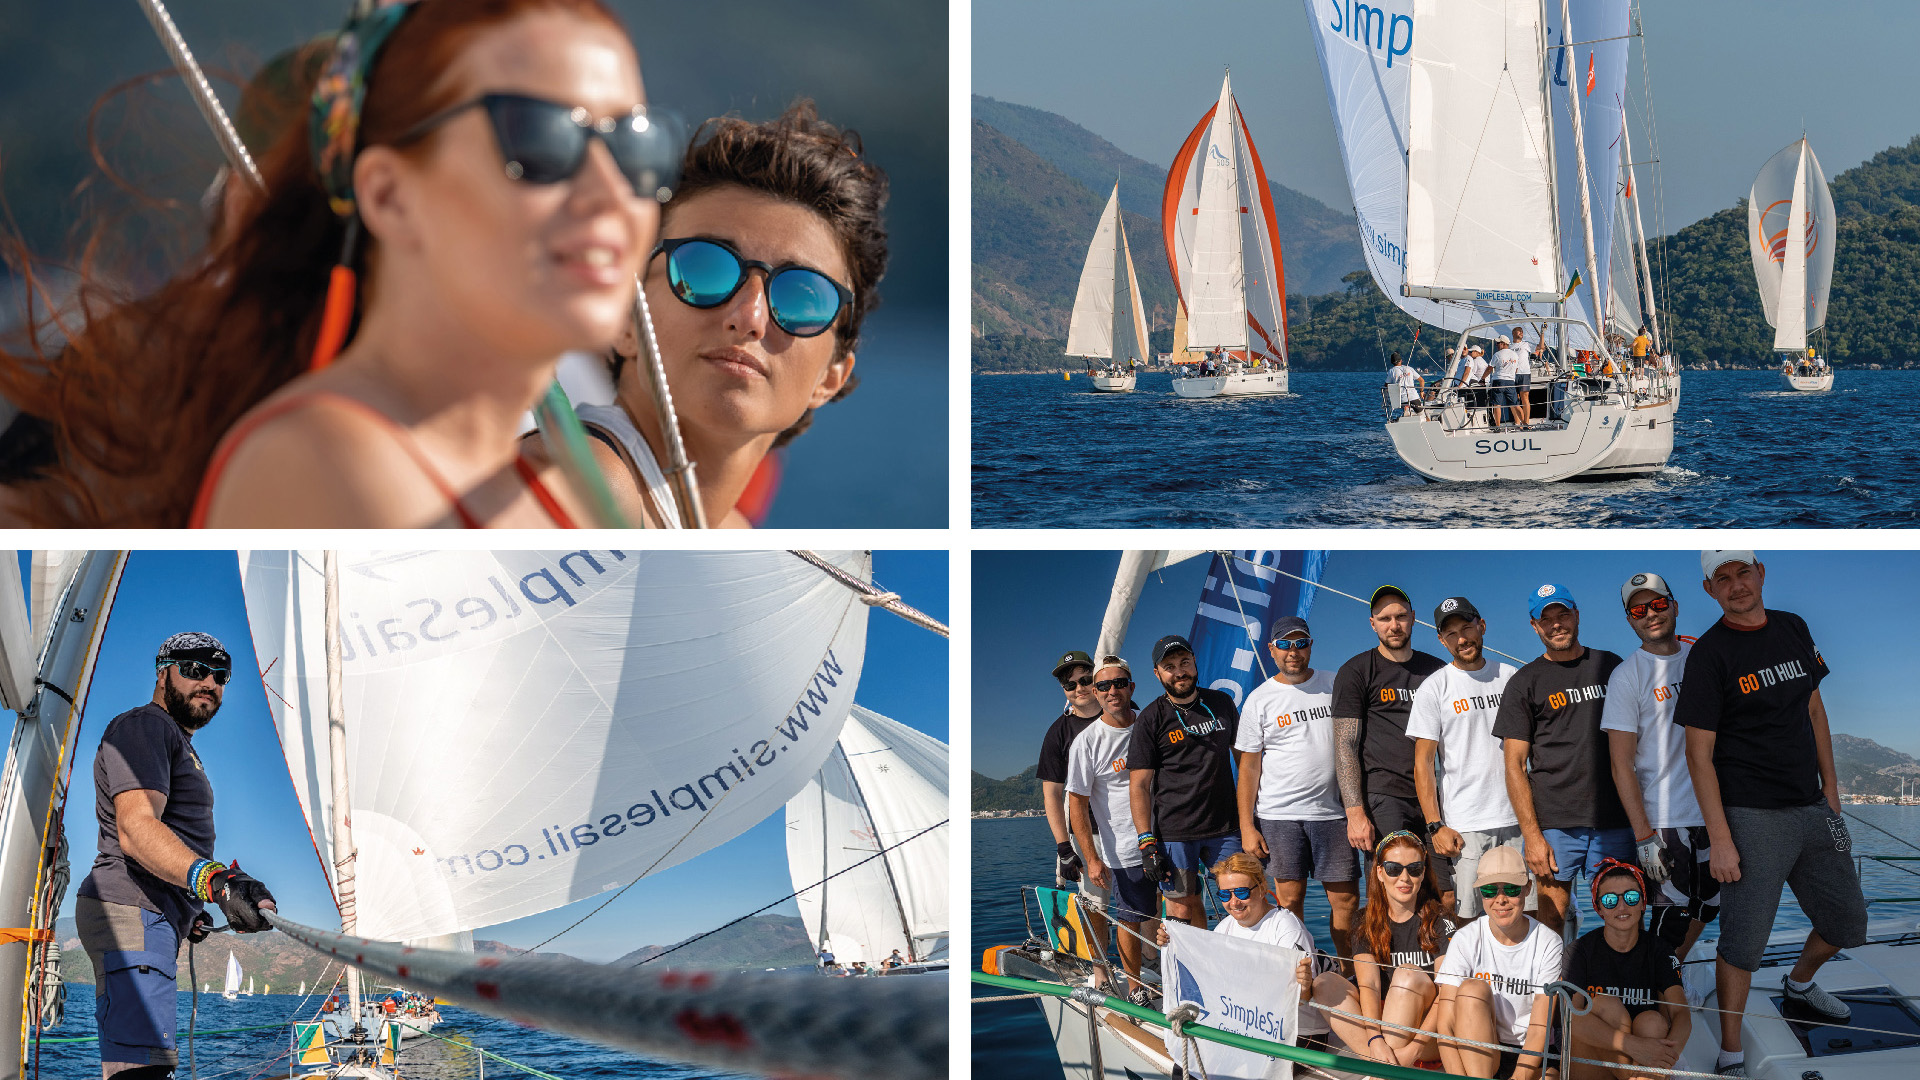 It's amazing SimpleSail yacht charter